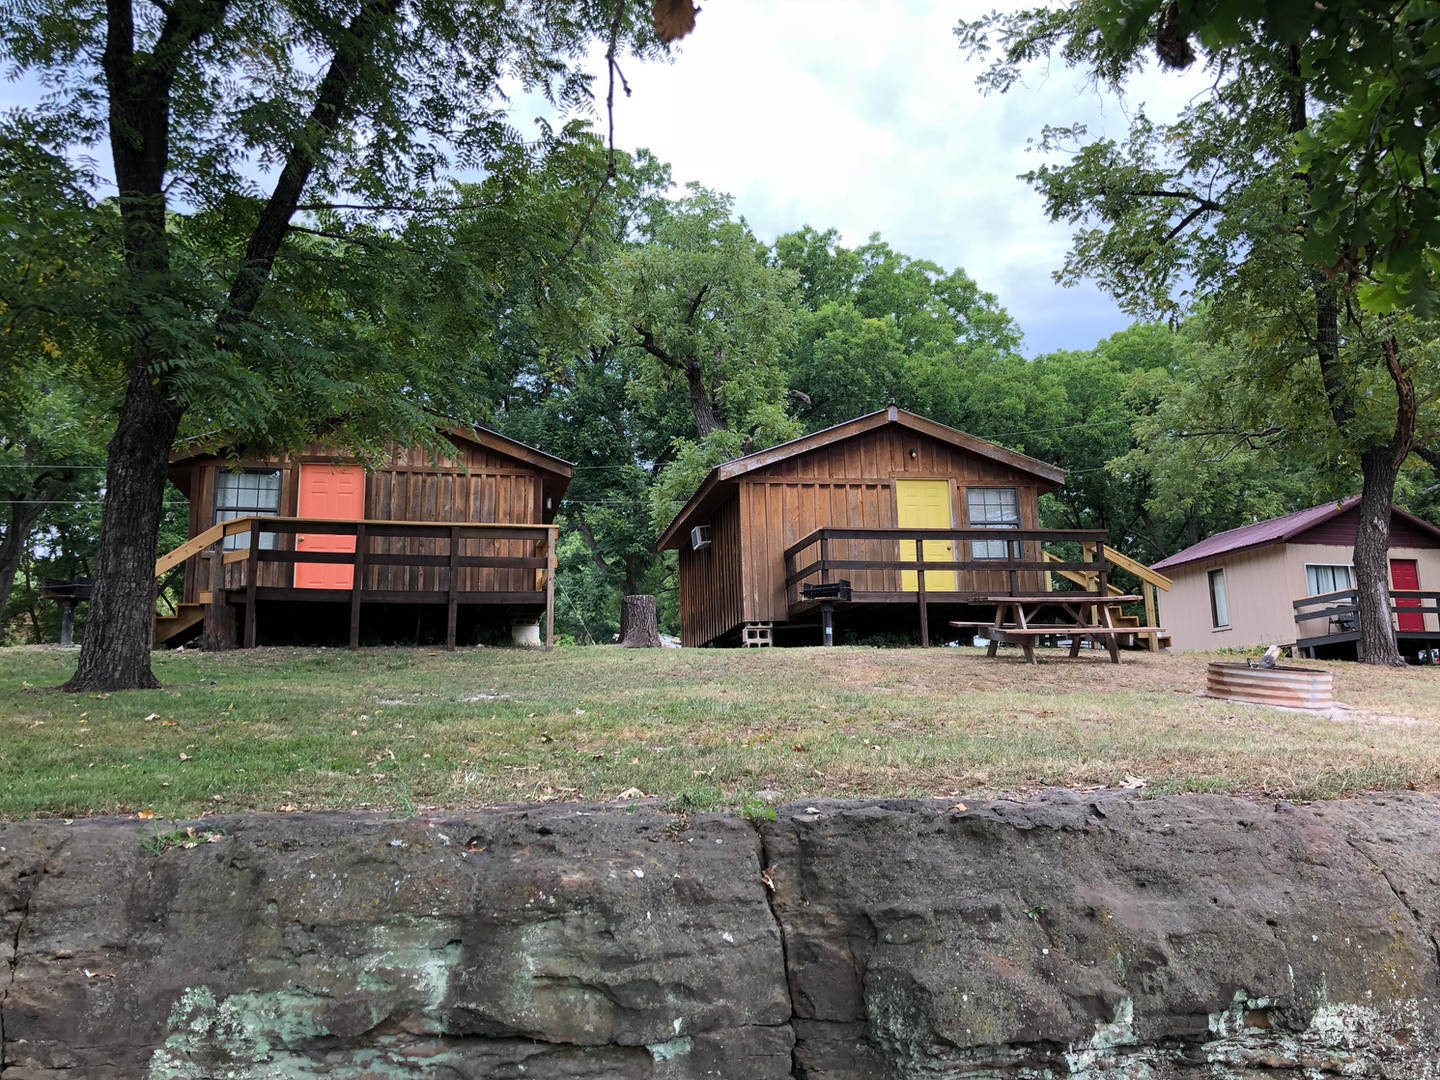 Cabins 5 and 6